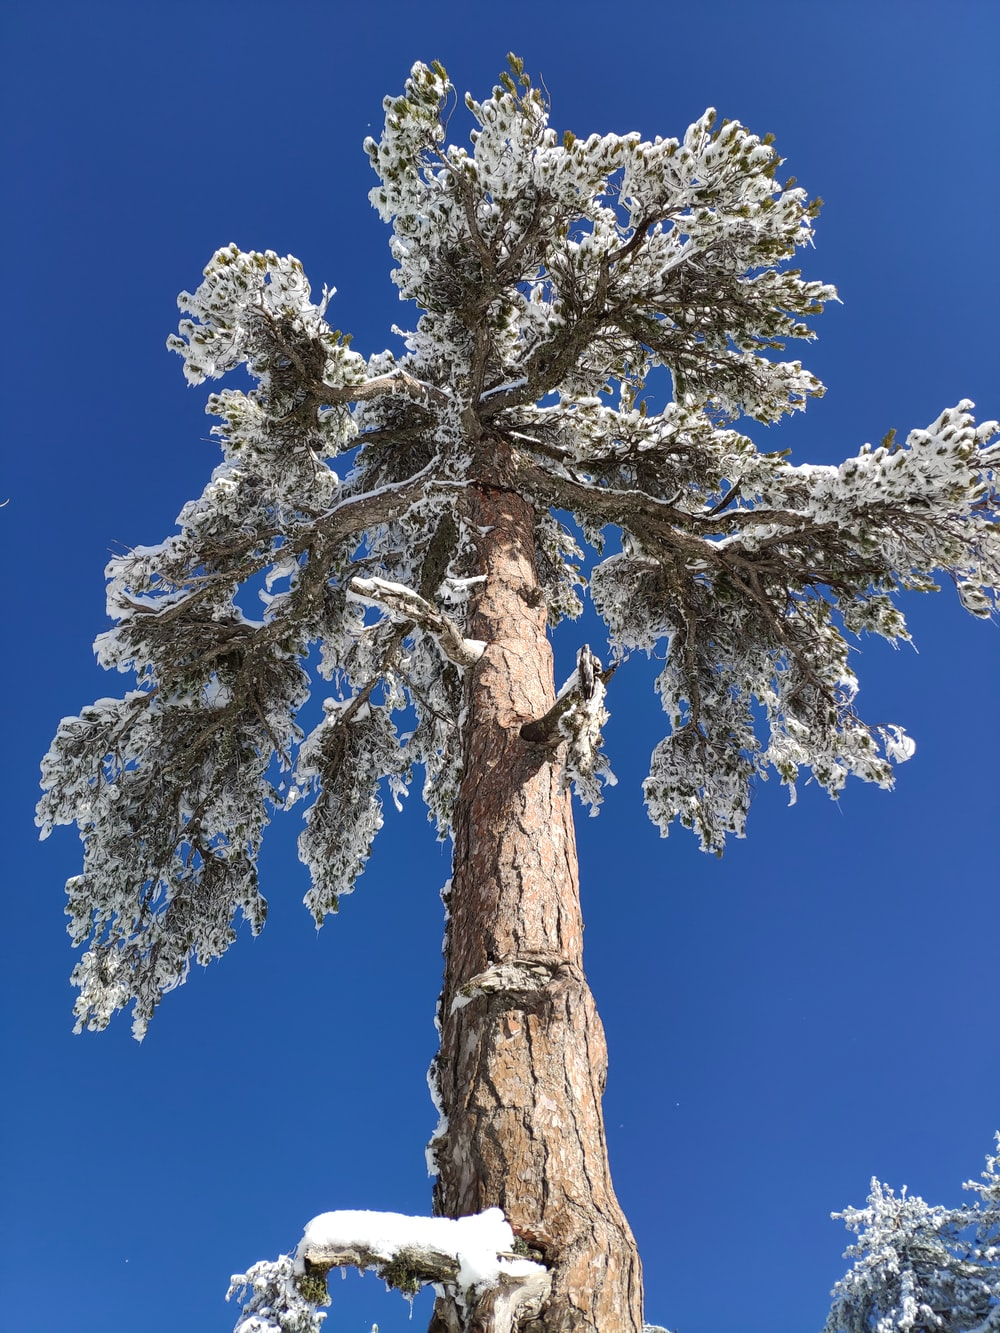 brown tree with white leaves under blue sky during daytime